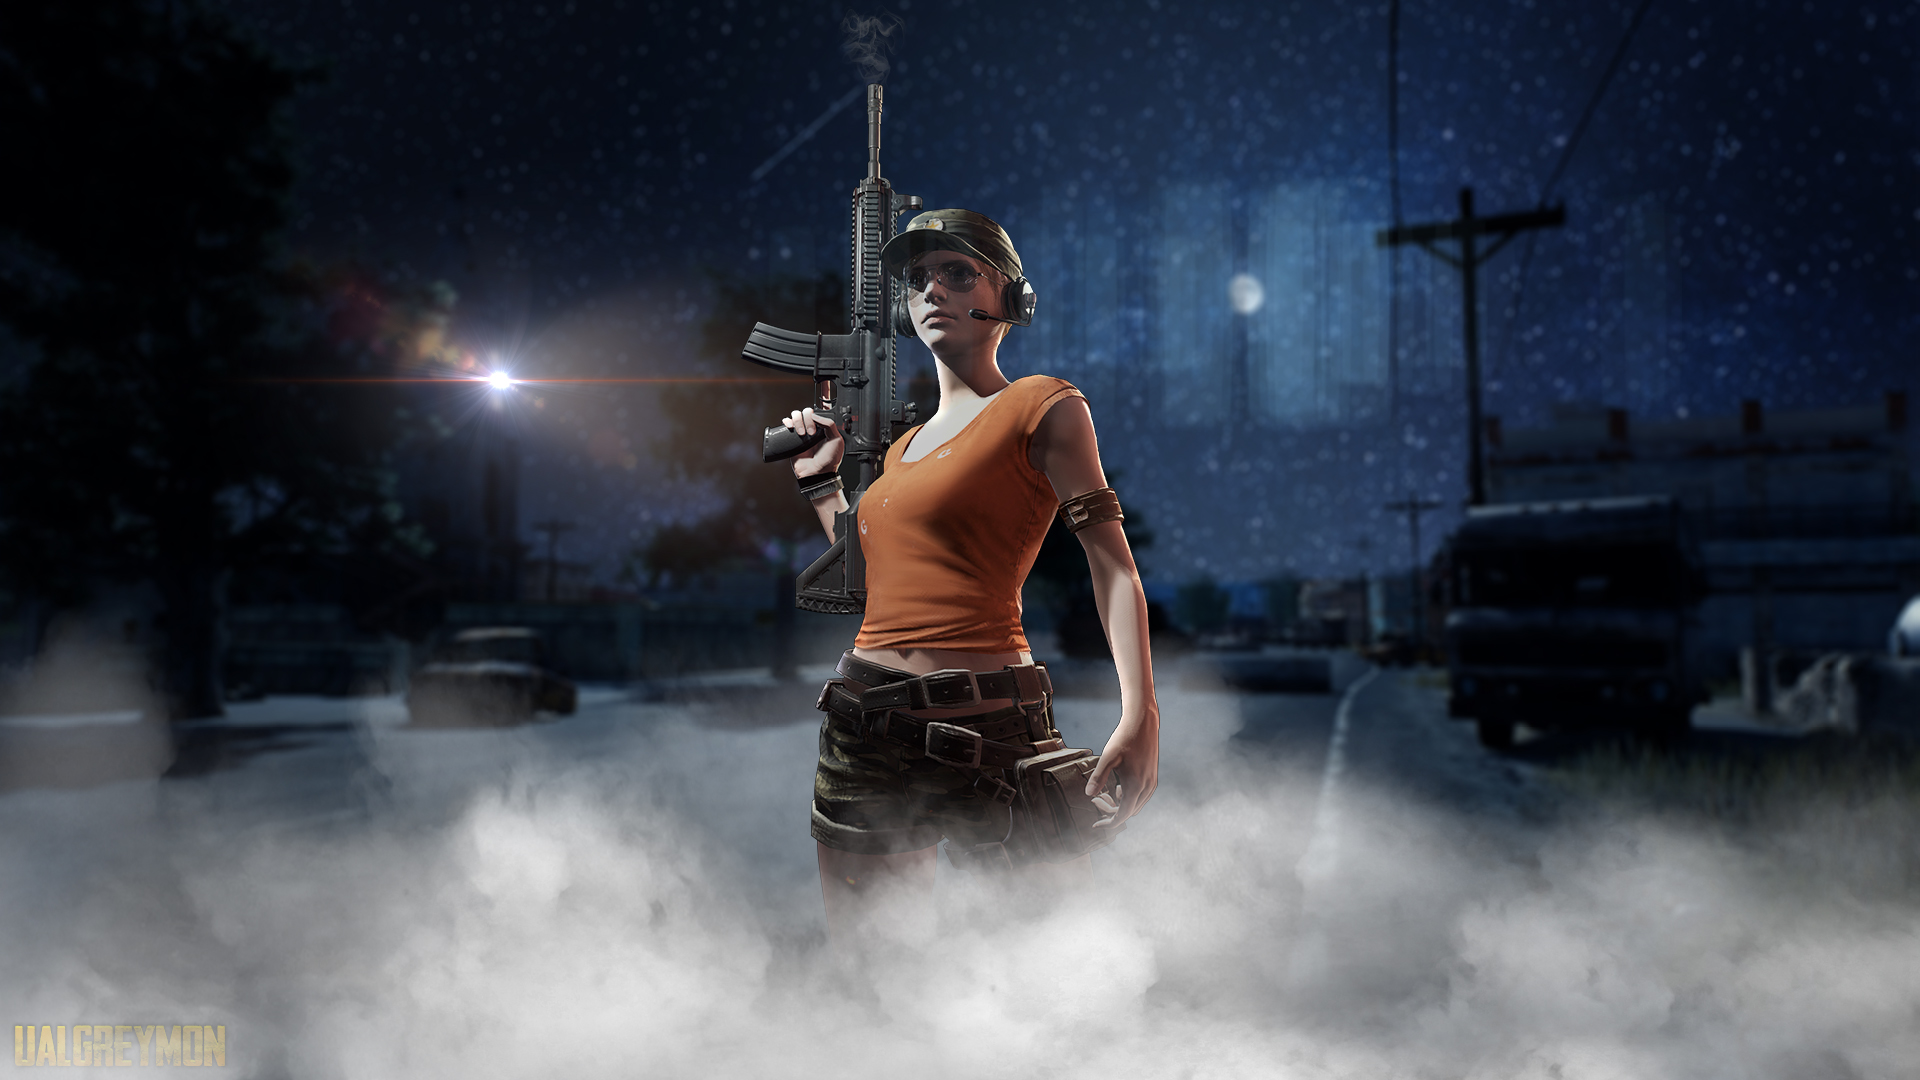 Pubg Helmet Guy With Girls And Guns 4k Hd Games 4k: Pubg Night, HD Games, 4k Wallpapers, Images, Backgrounds